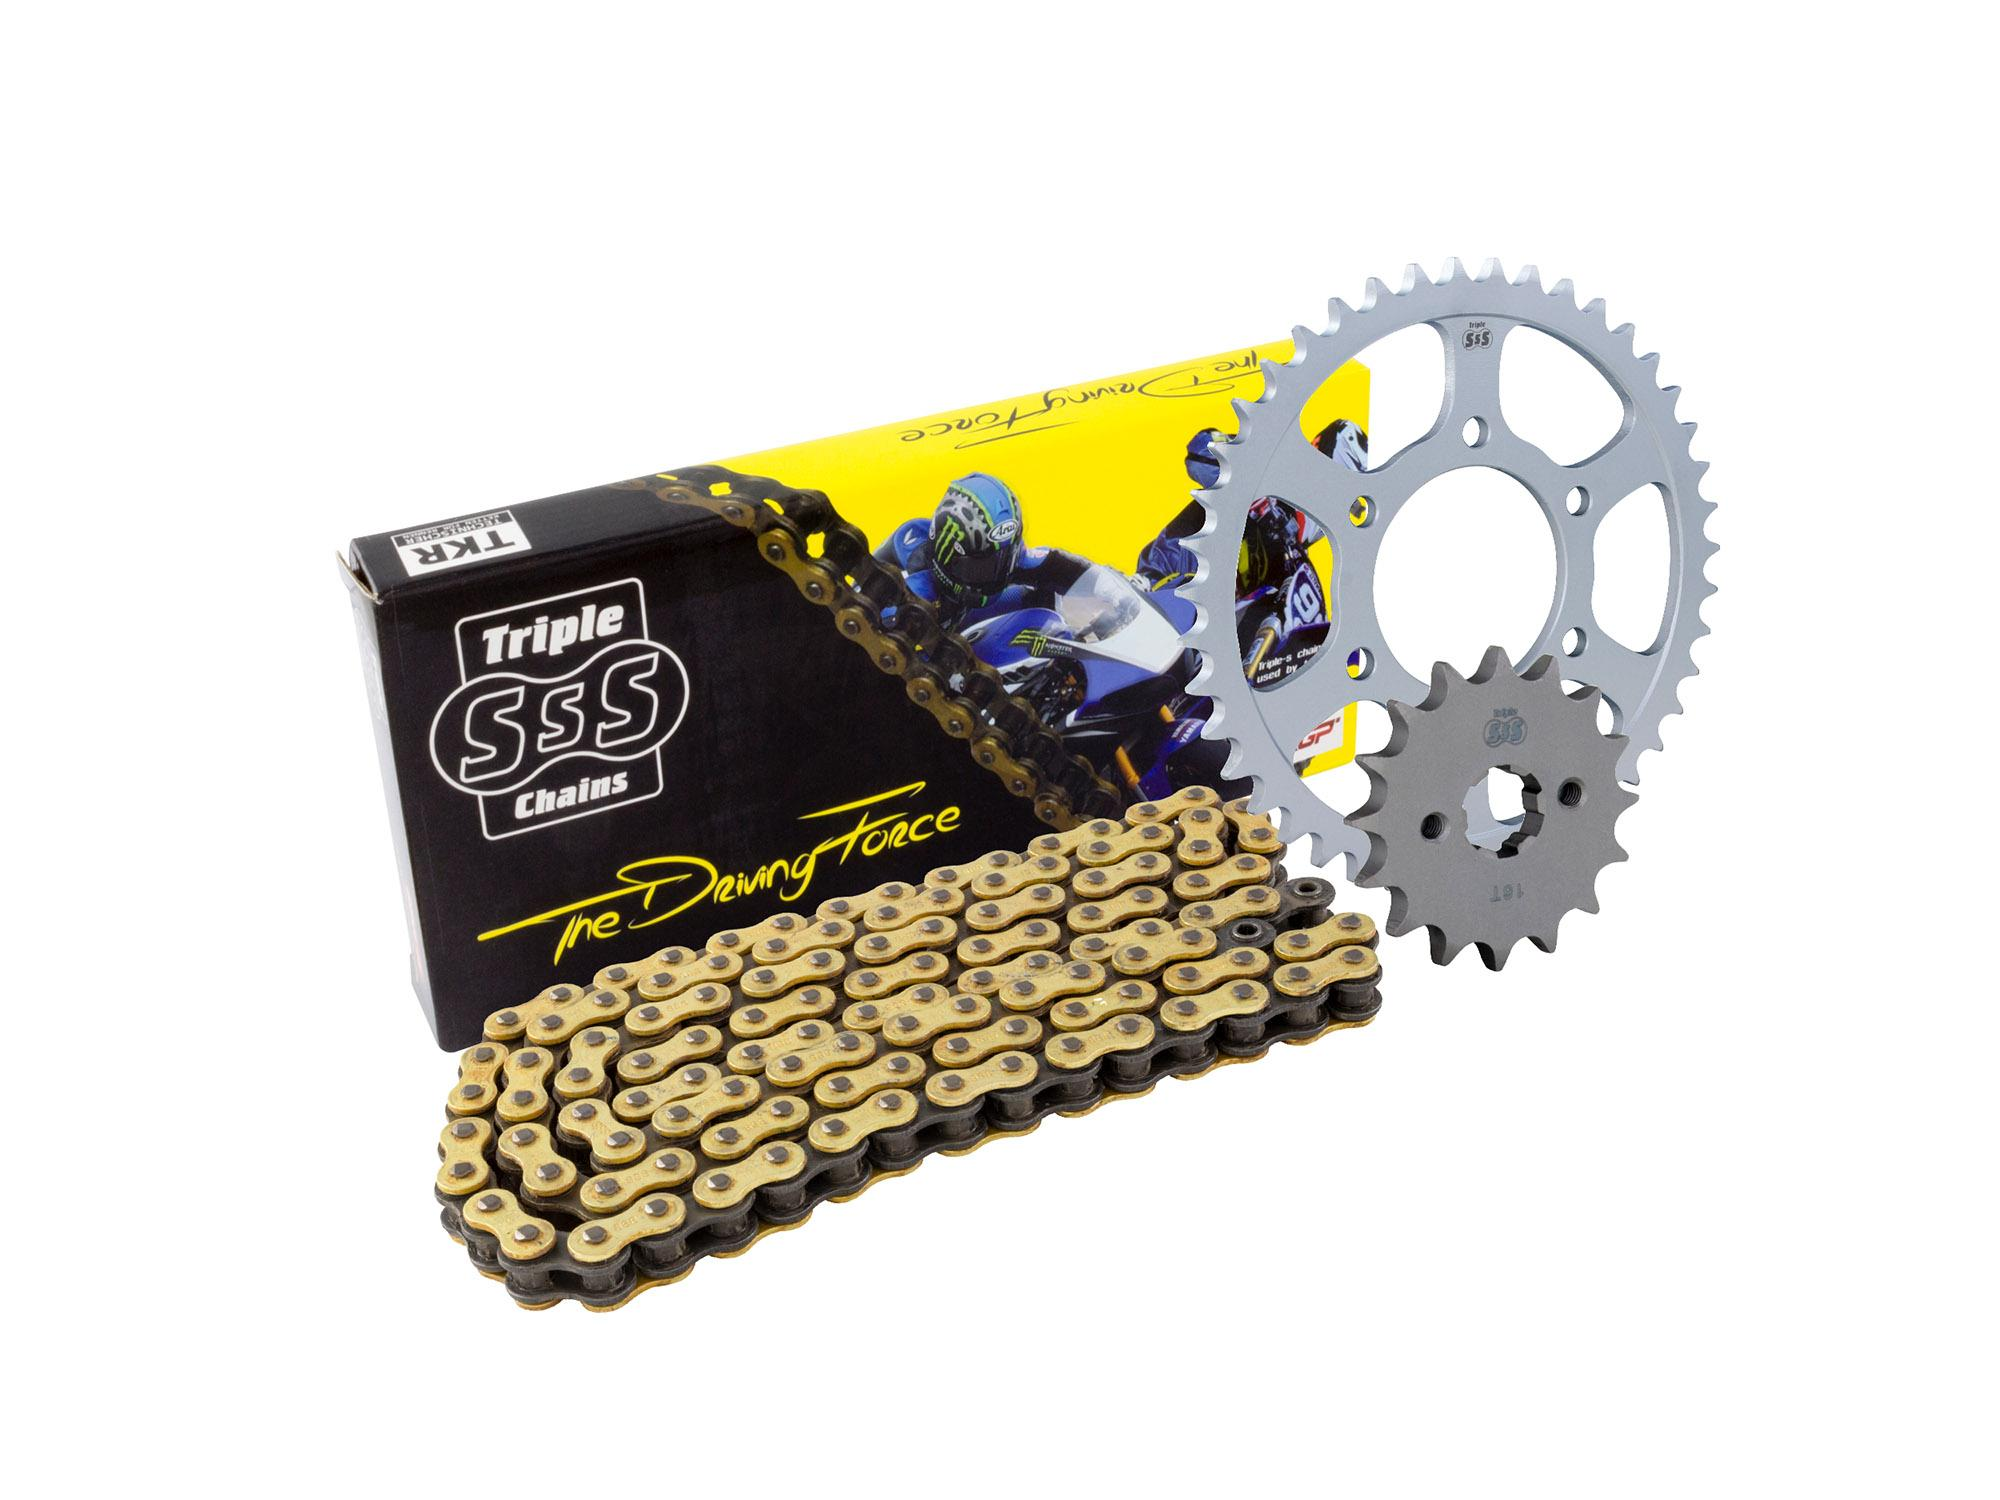 Yamaha FZ8 N / S / Fazer 8 10 Chain & Sprocket Kit: 16T Front, 46T Rear, HD O-Ring Gold Chain 525H 122 Link